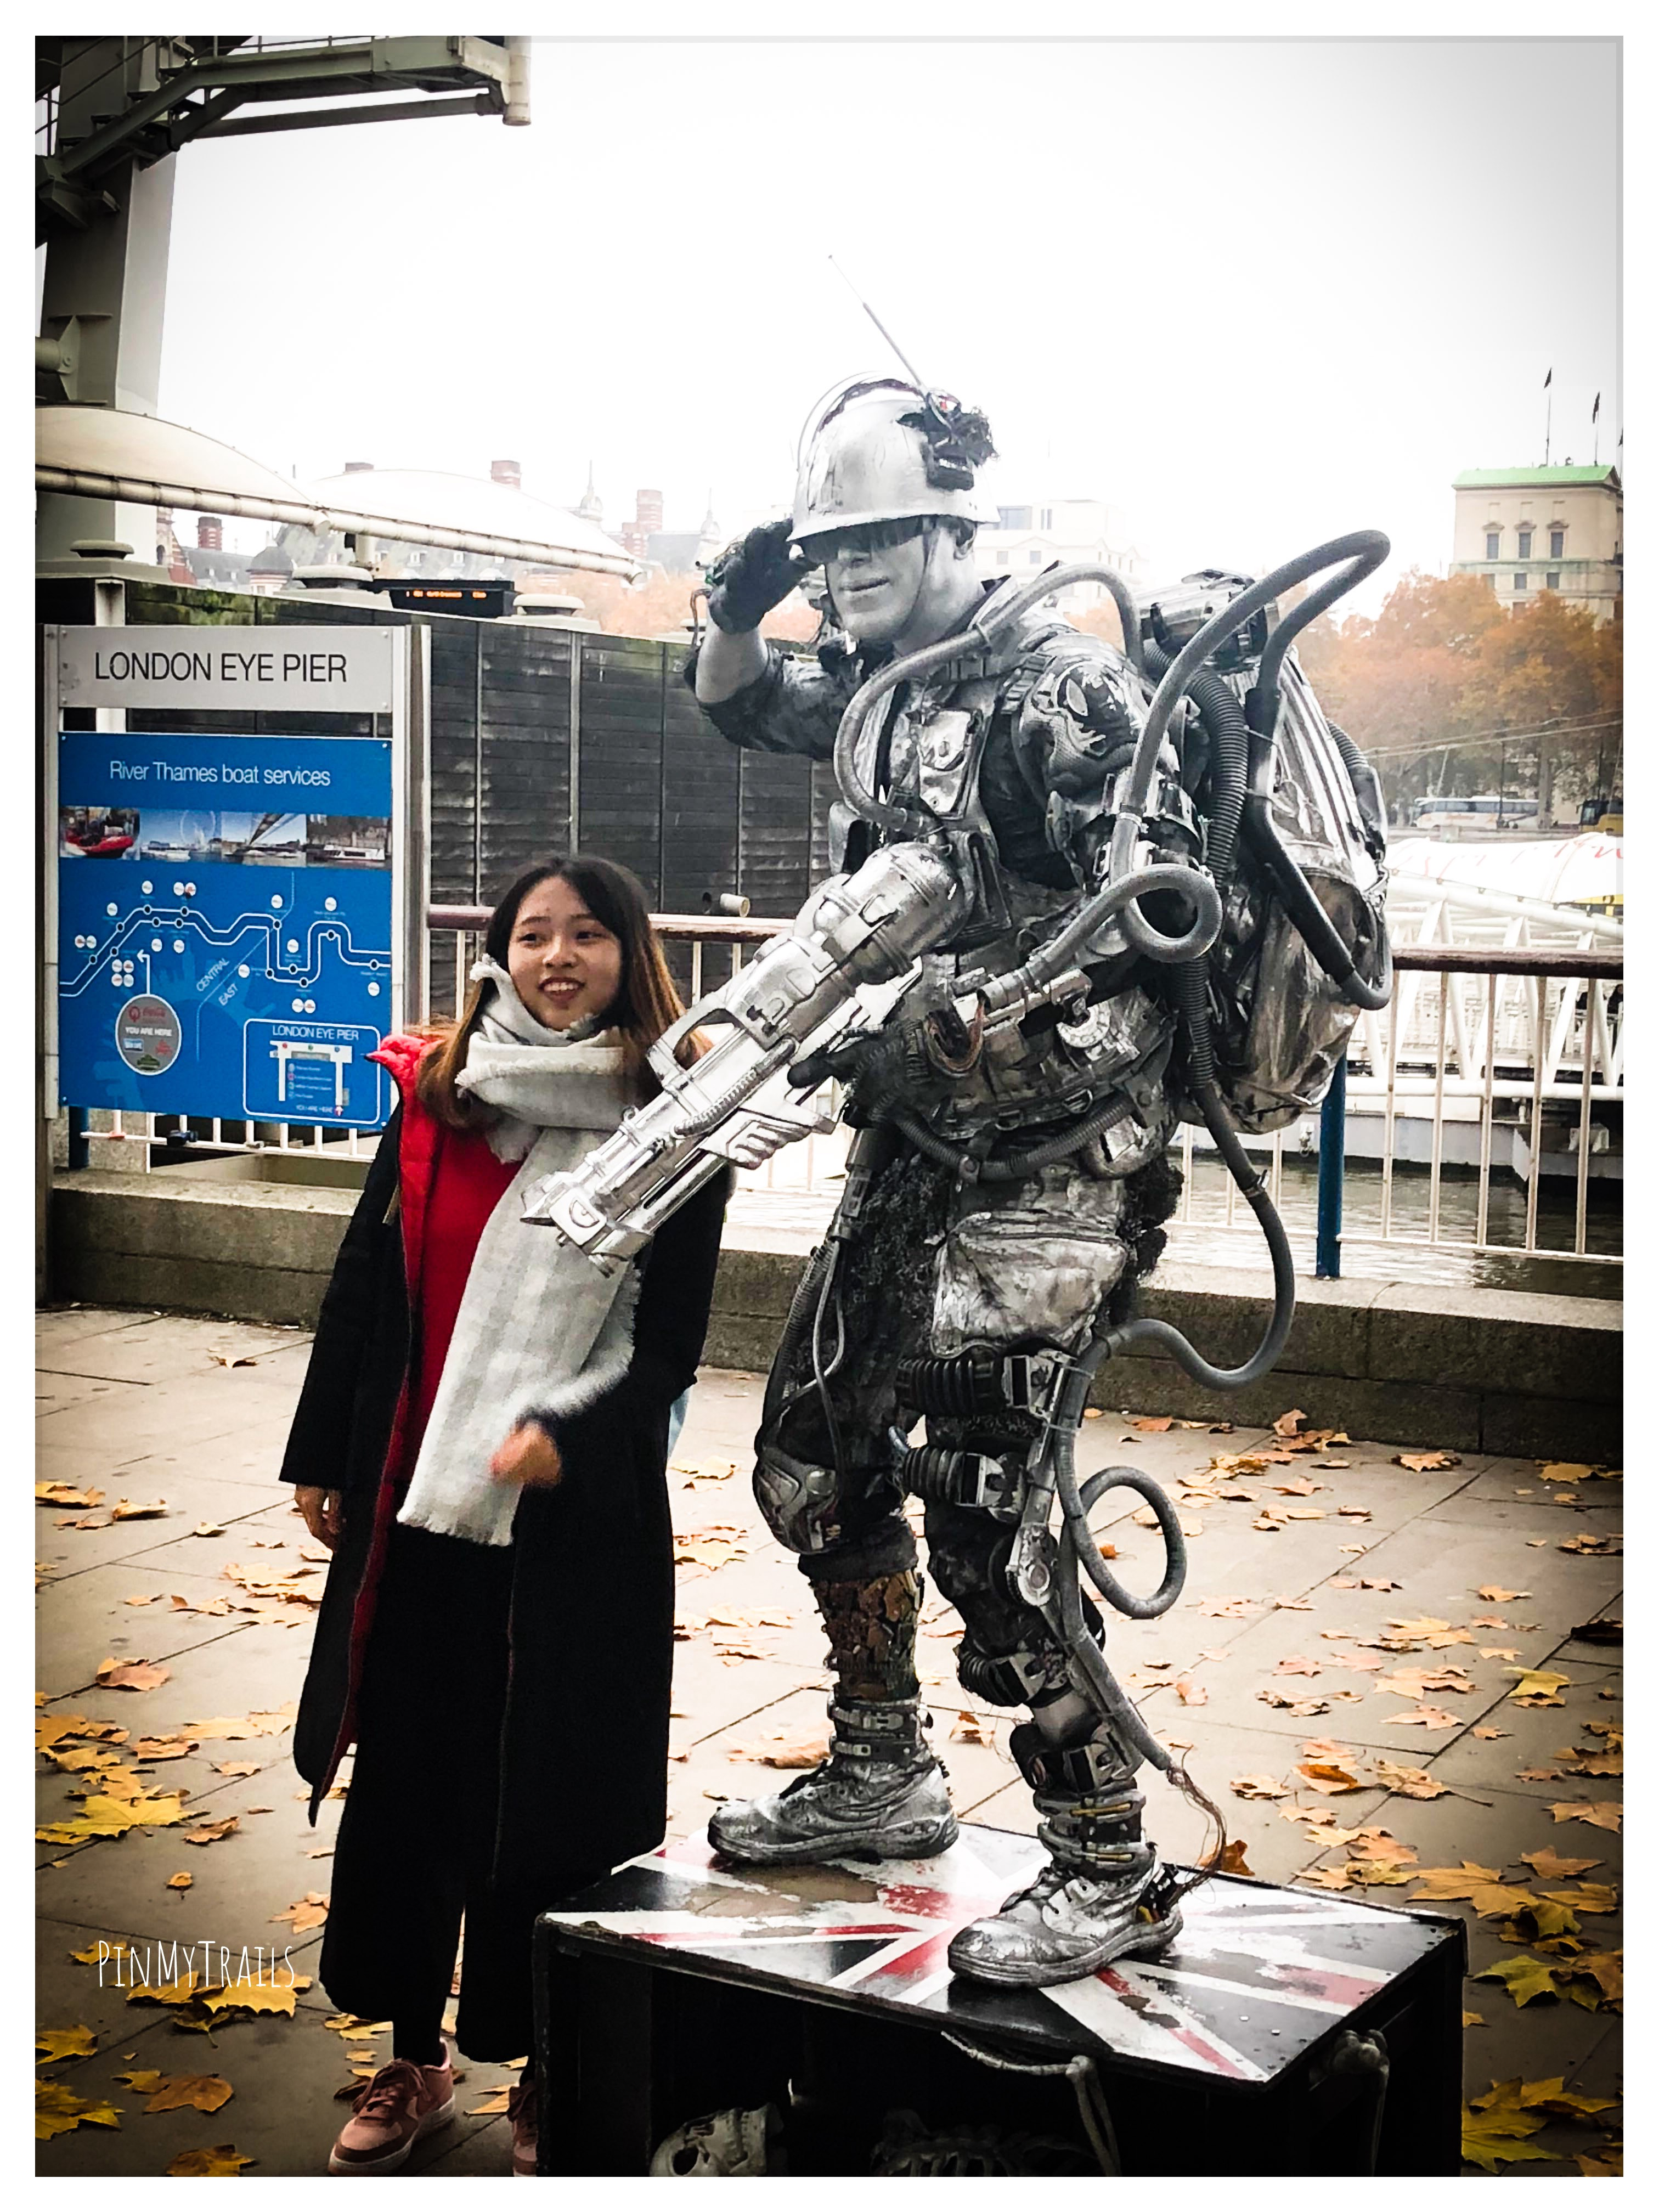 Street artist dressed as a space soldier